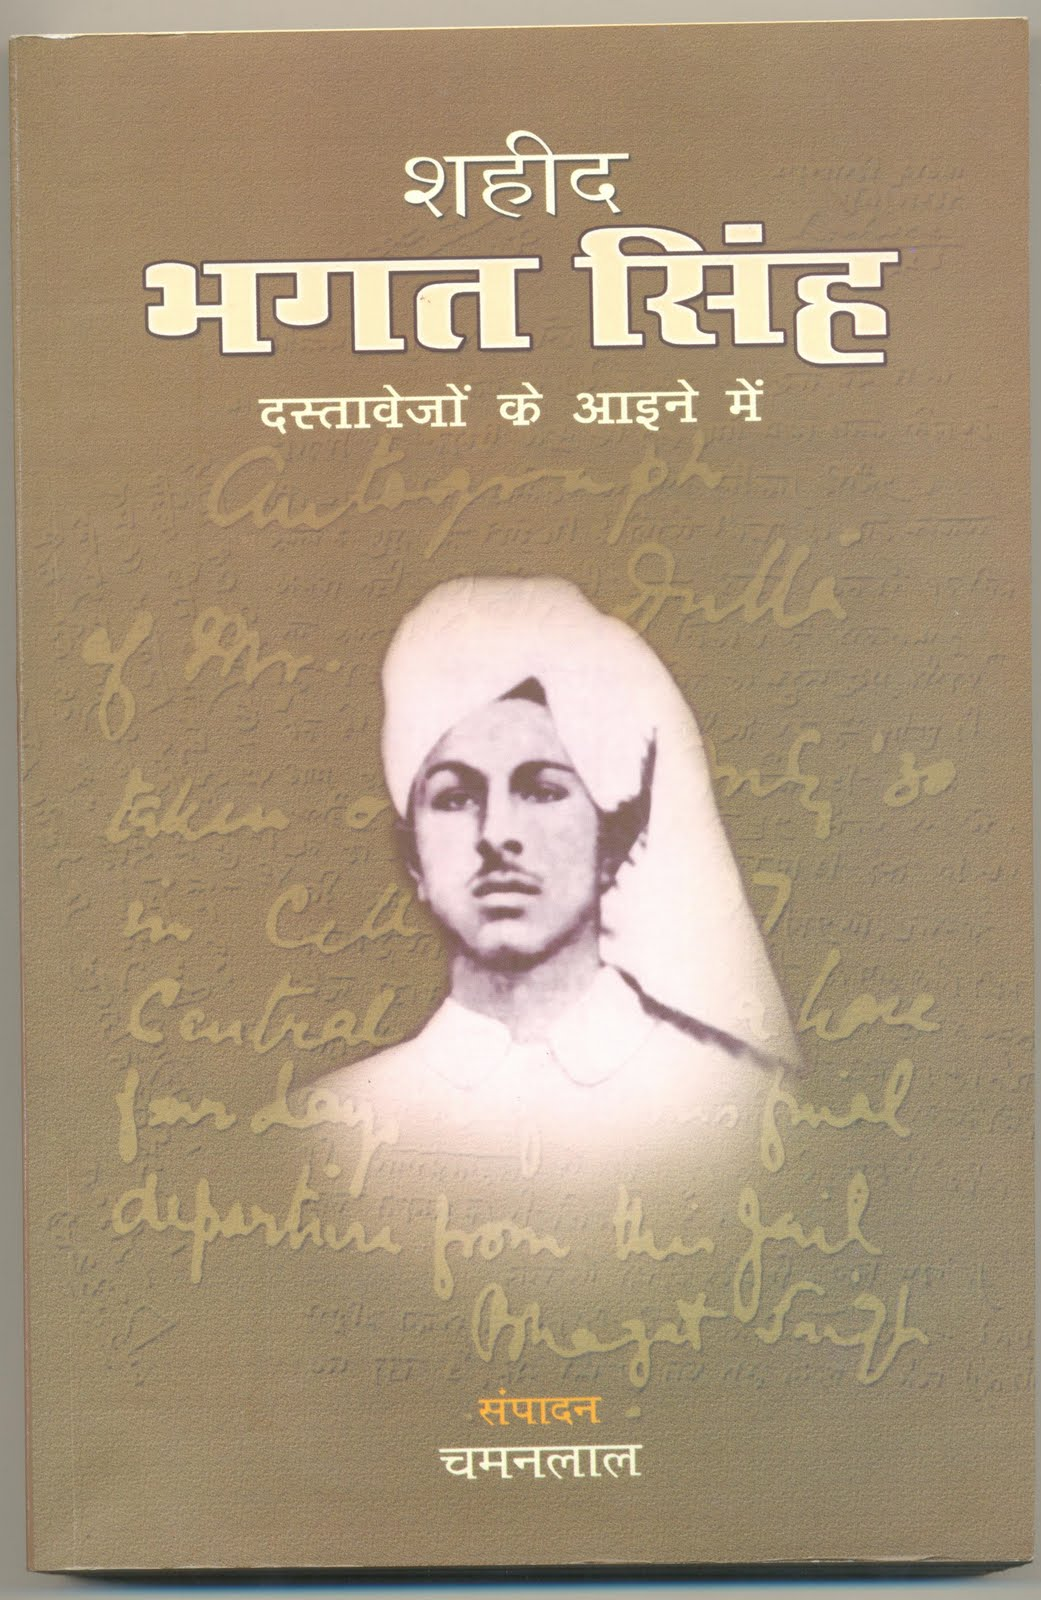 example of hindi essay on bhagat singh when he was in class nine he joined the non cooperation movement then try our essay challenge was involved in an bhagat singh hindi